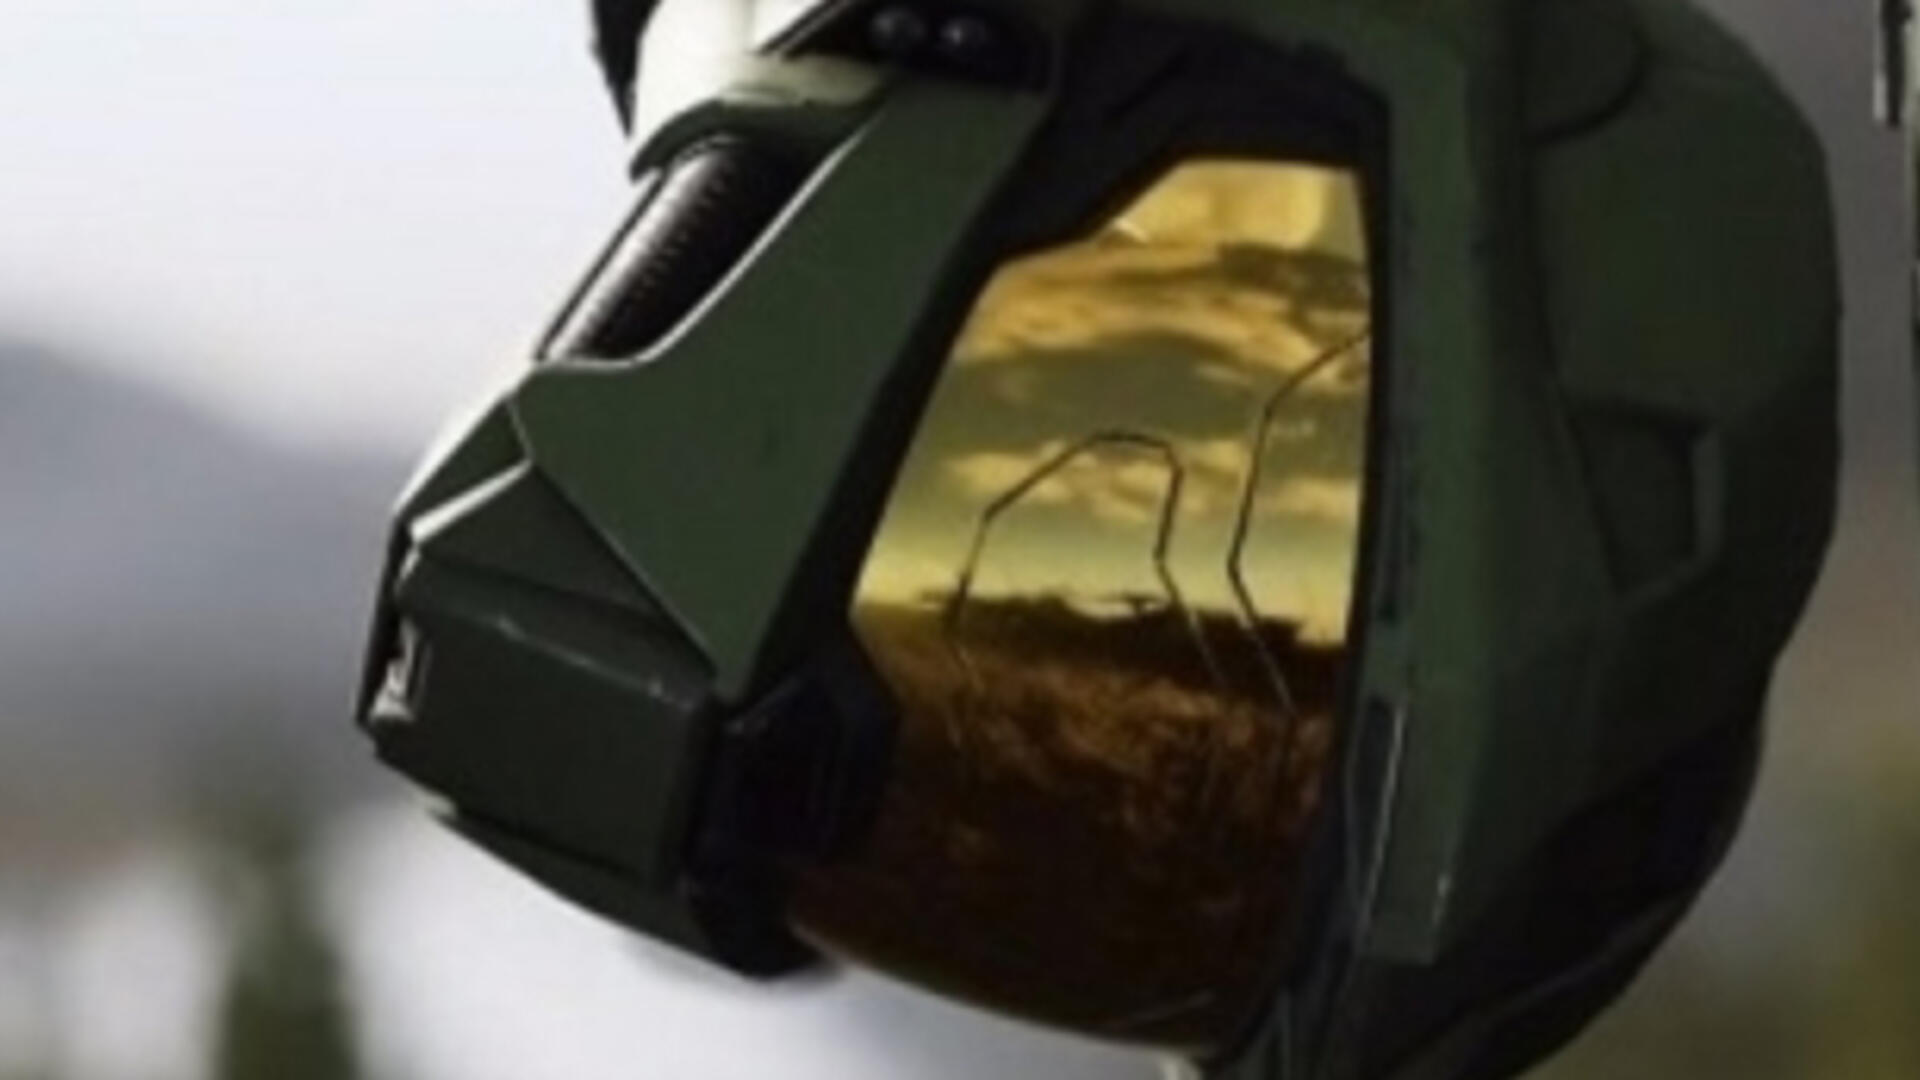 Halo Infinite Won't Offer Loot Boxes for Real Money